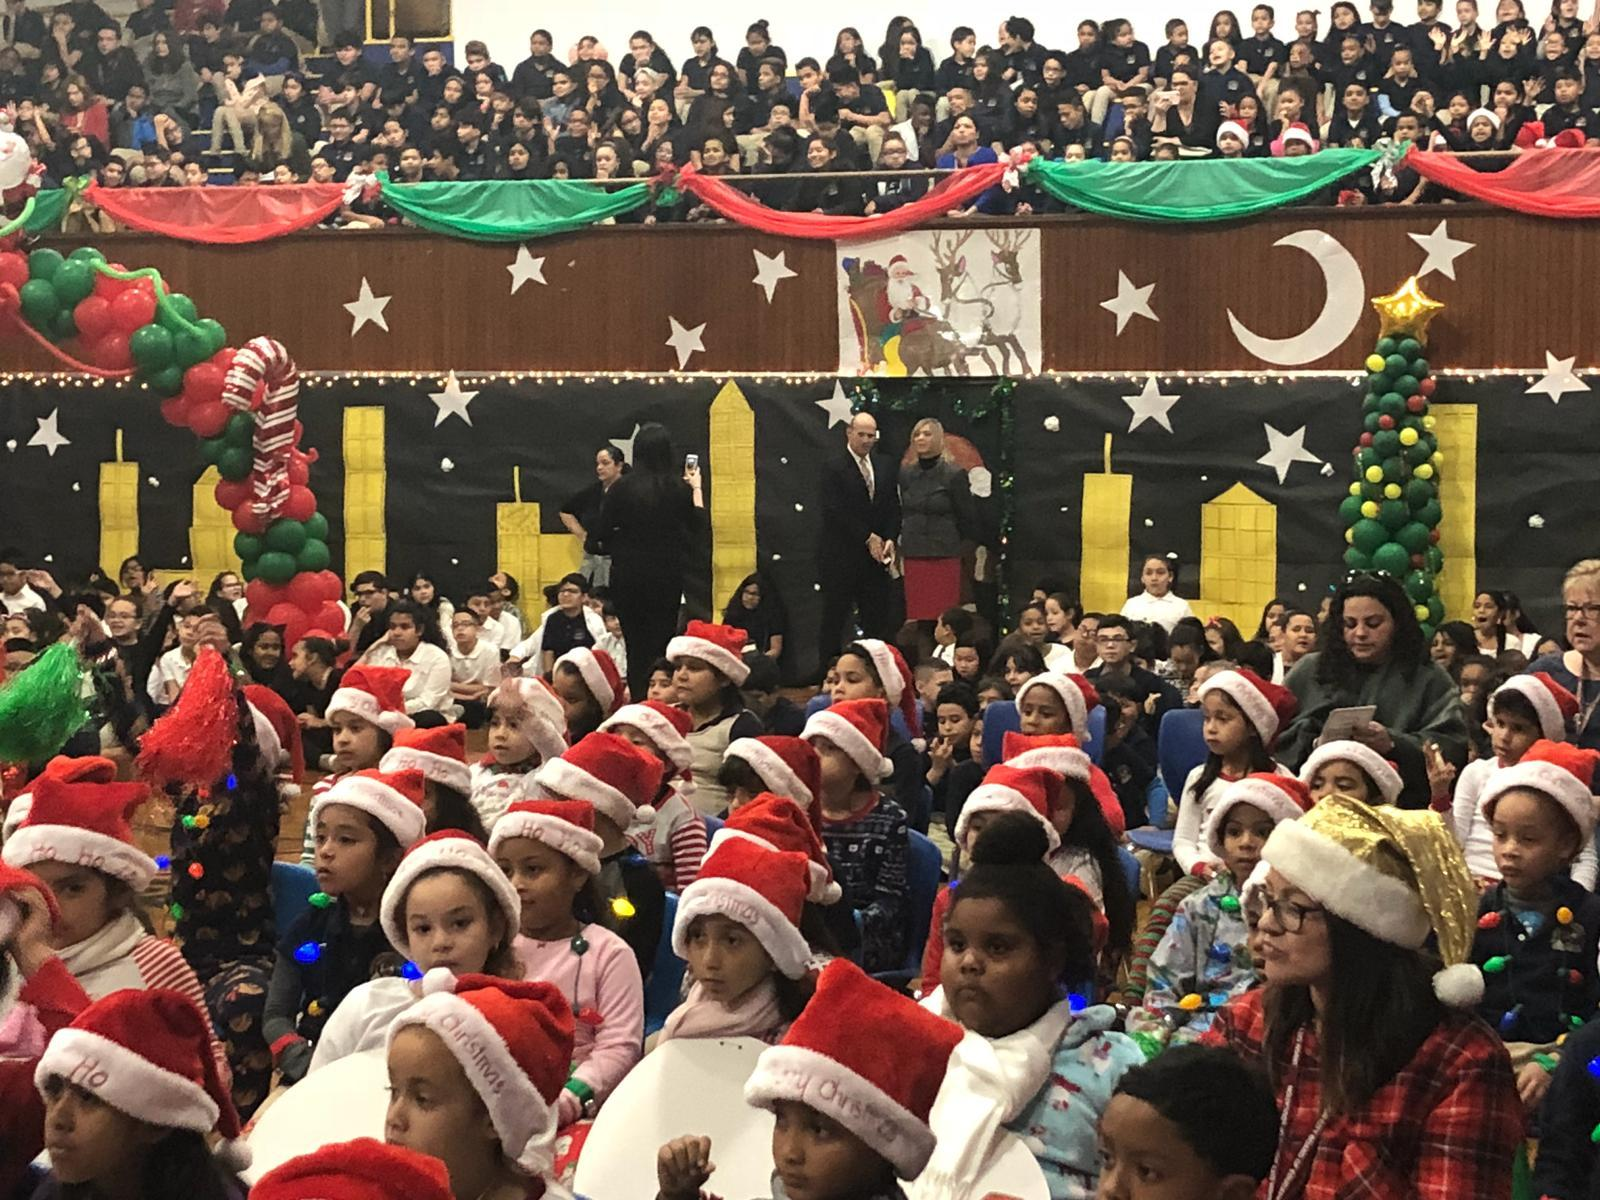 a crowd of young children wearing santa hats as the older children are sitting in the stands of the auditorium